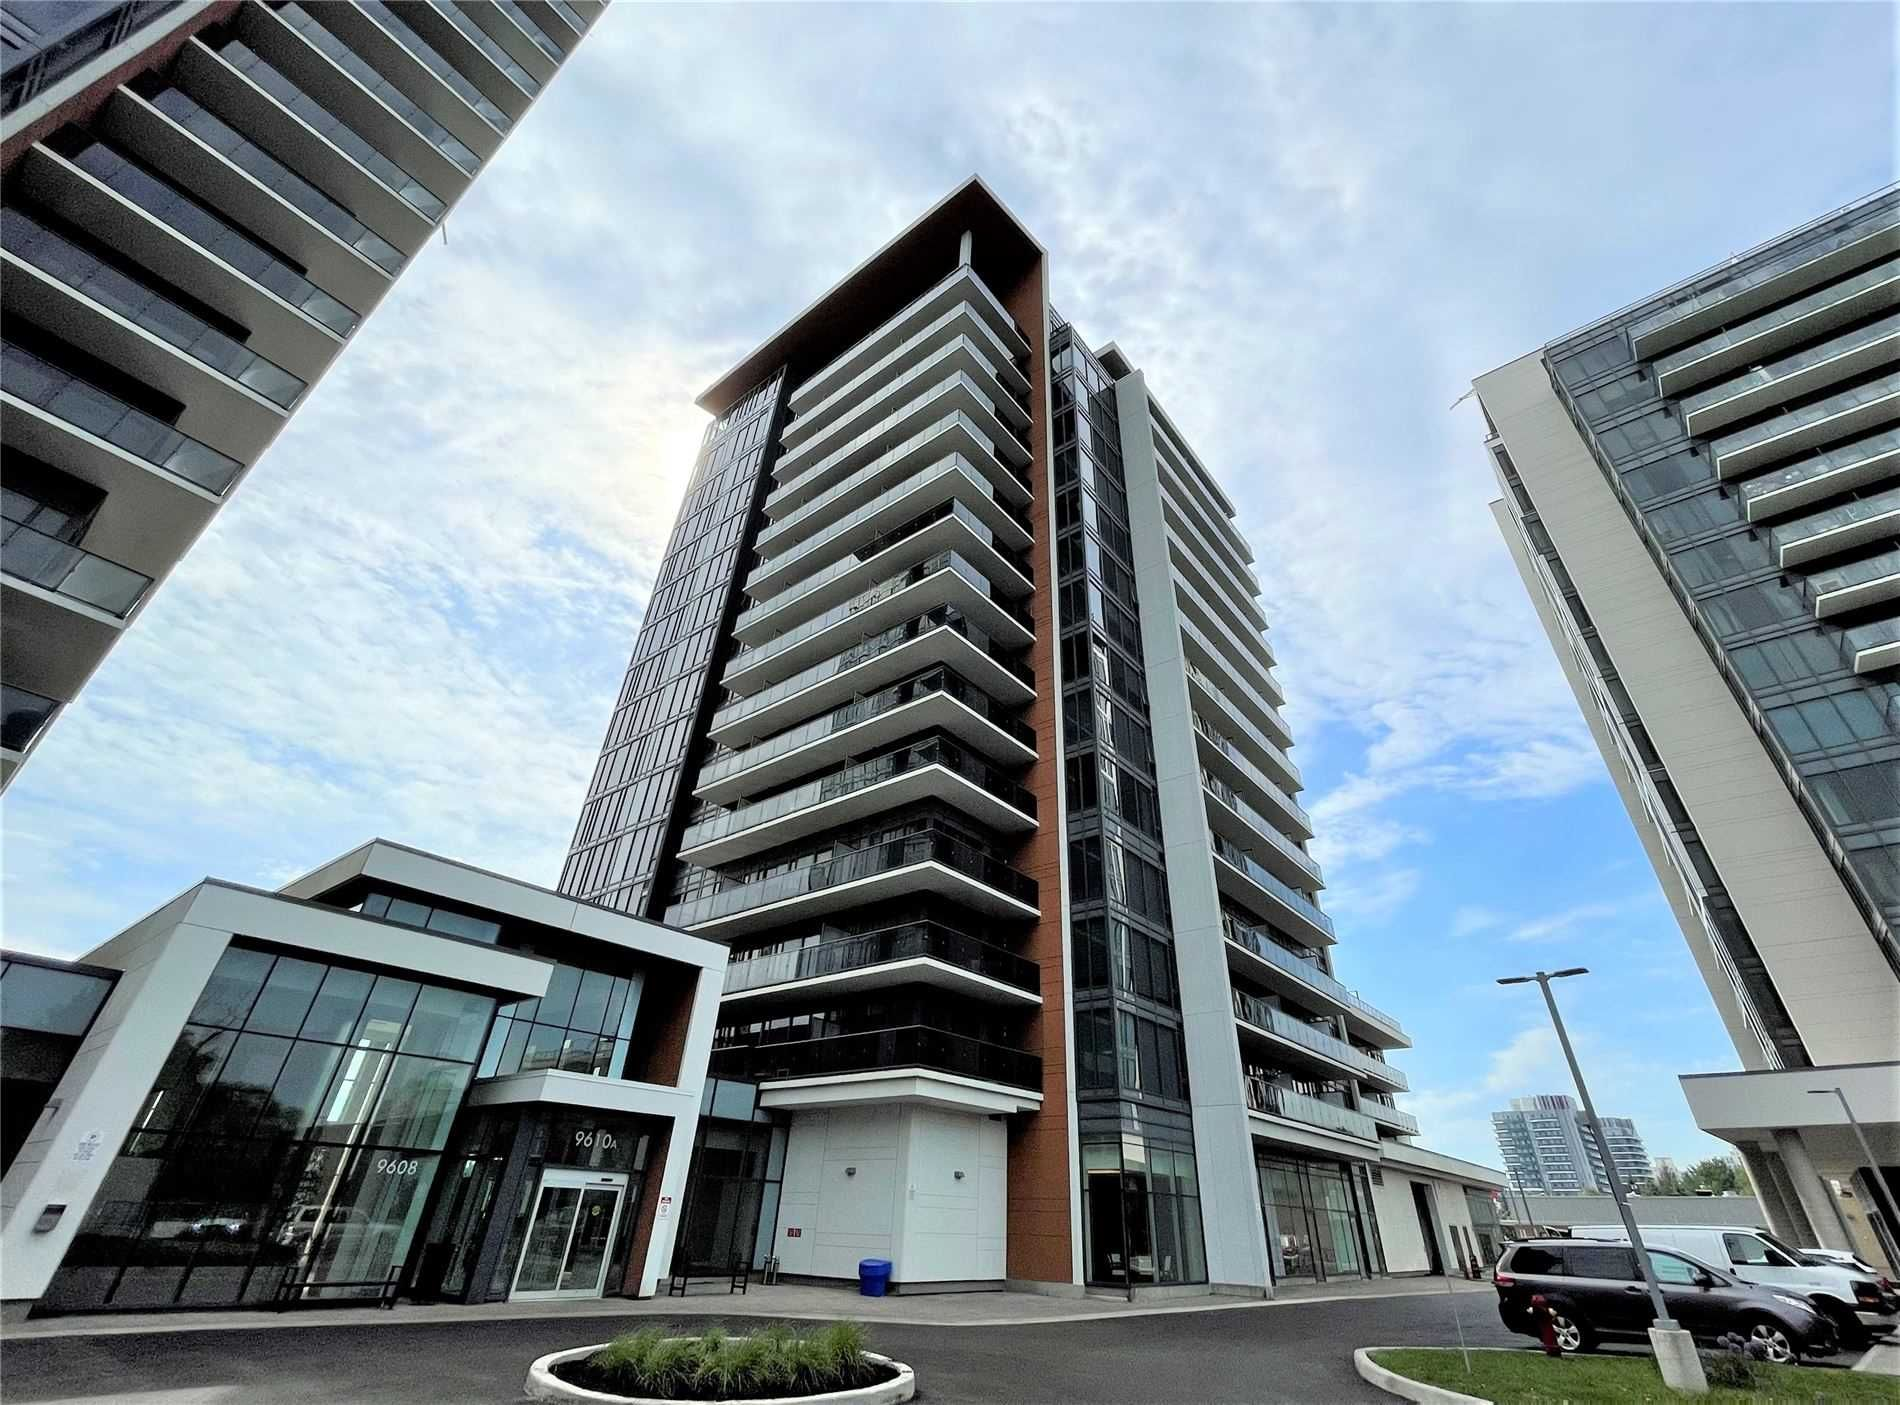 9600 Yonge St, unit 810B for sale in Toronto - image #1